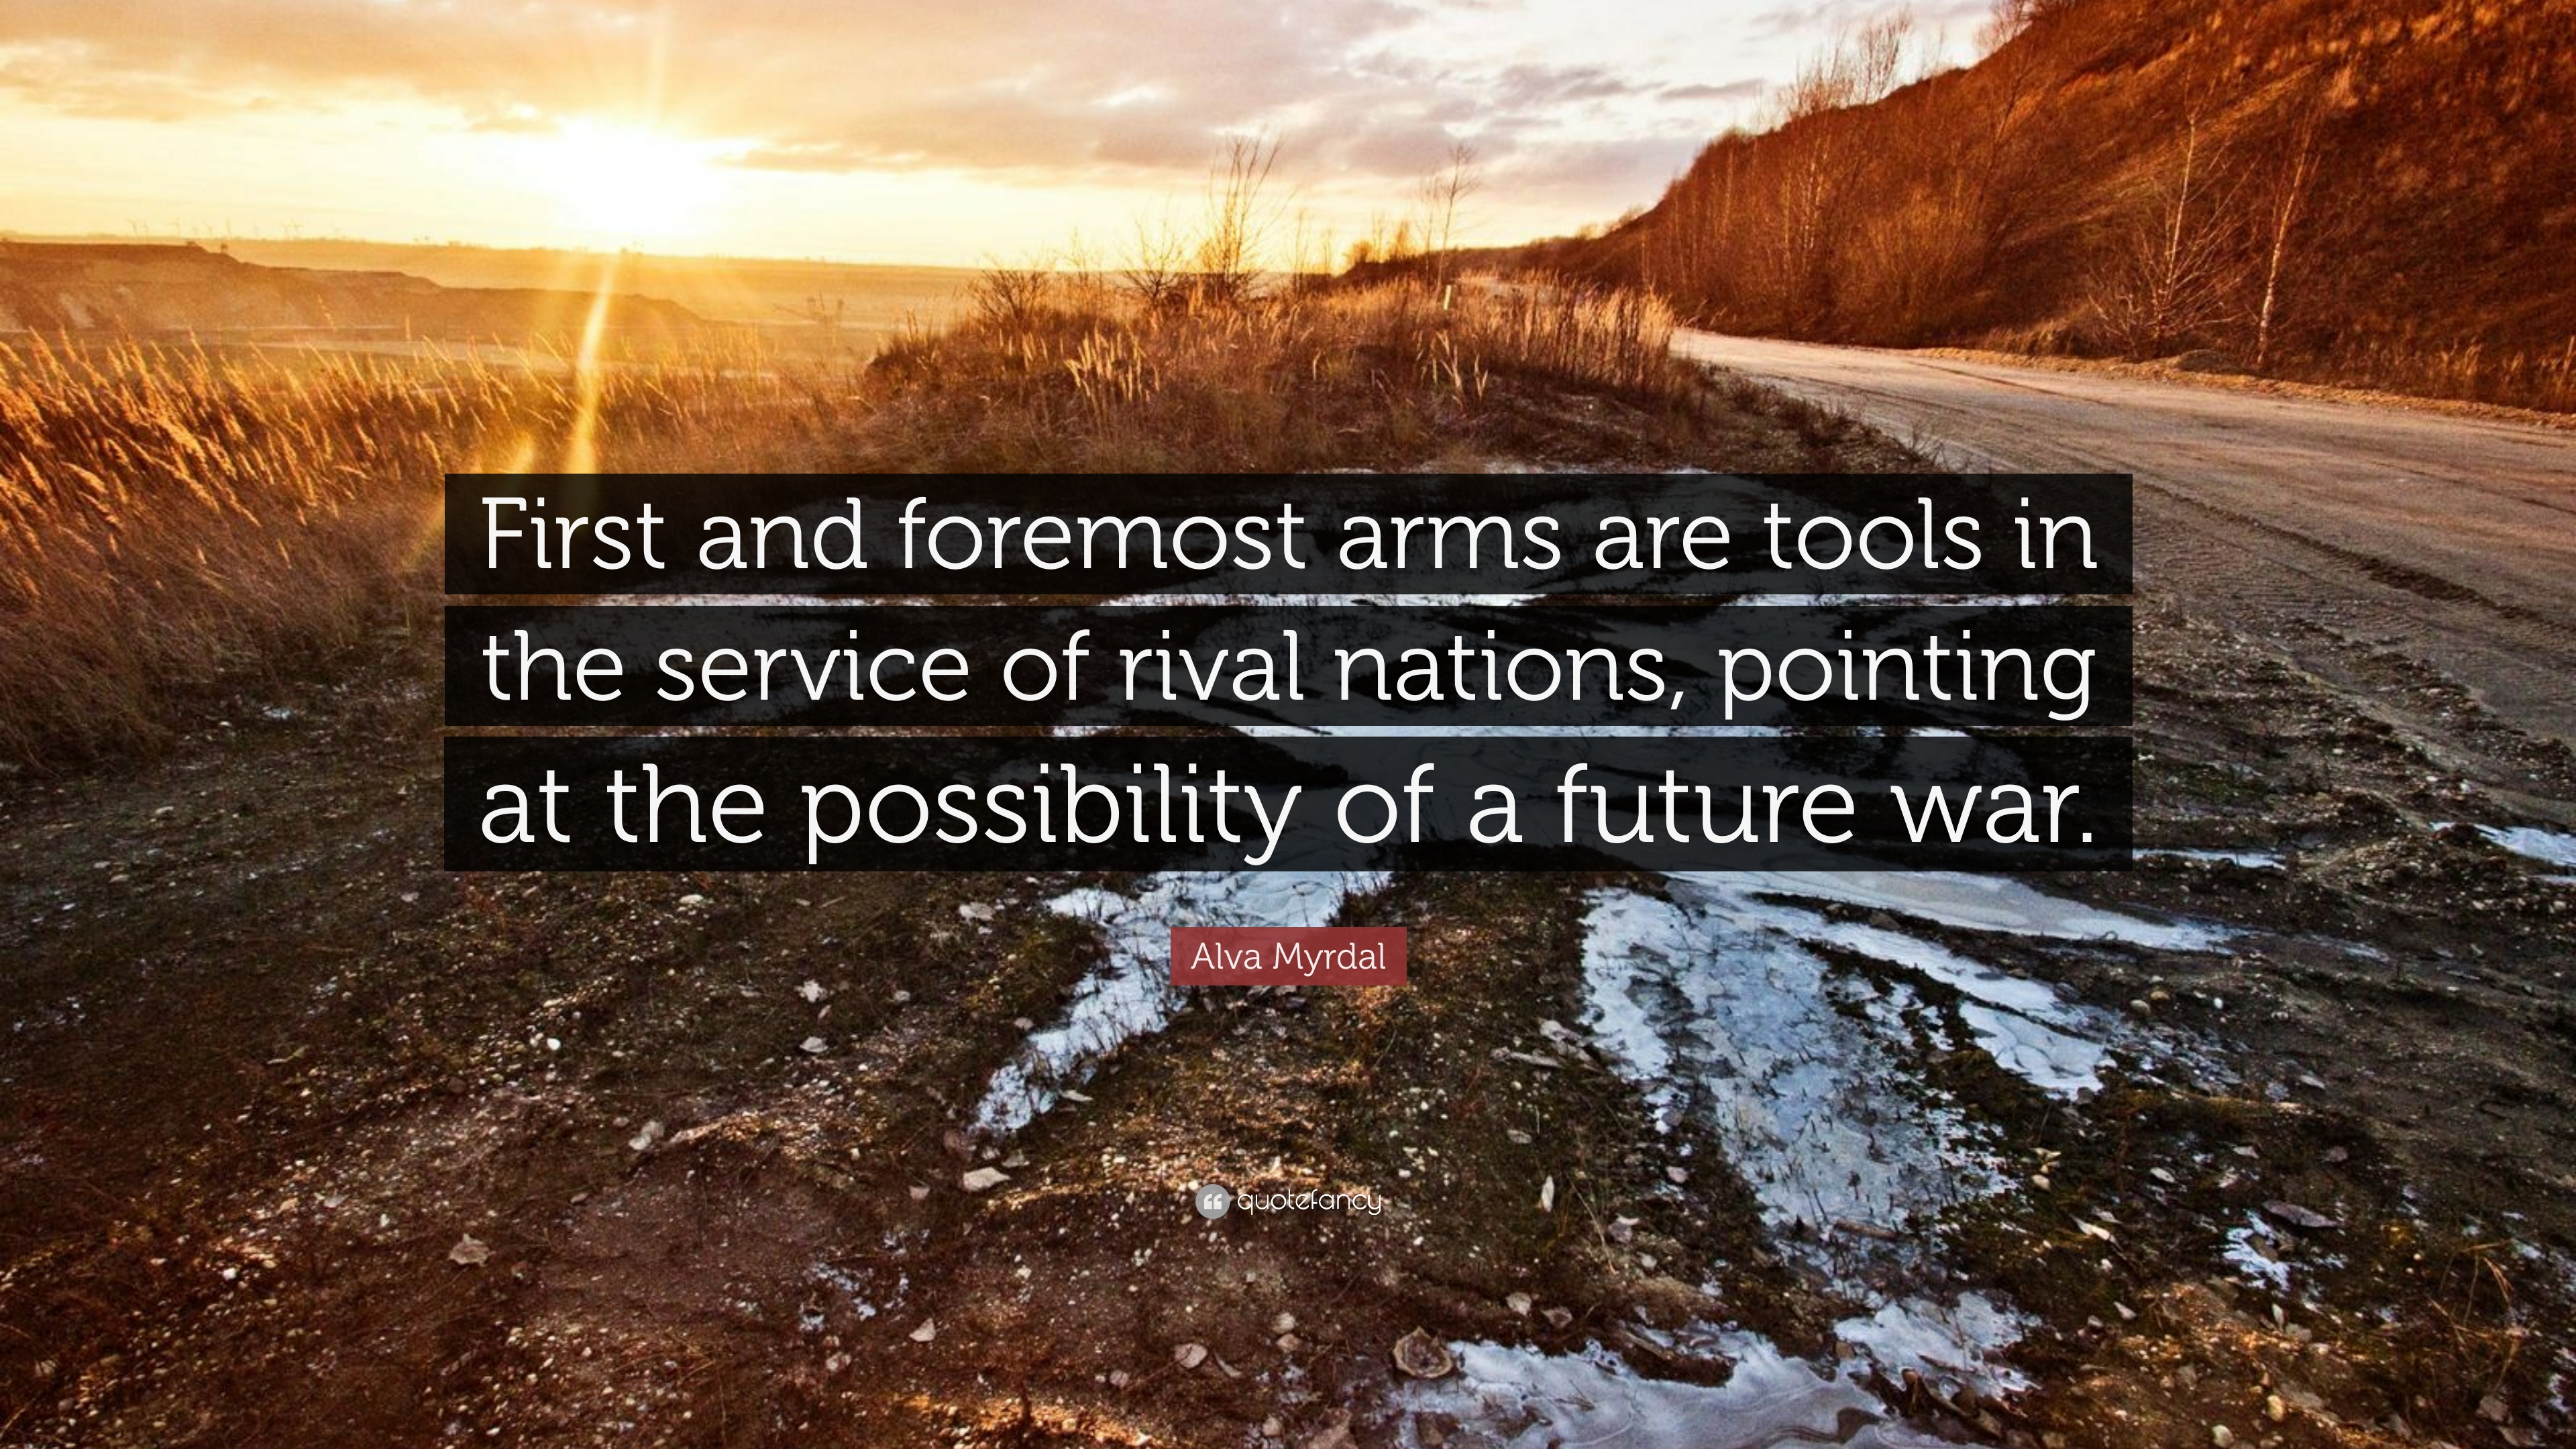 Alva Myrdal Quote First And Foremost Arms Are Tools In The Service Of Rival Nations Pointing At The Possibility Of A Future War 7 Wallpapers Quotefancy